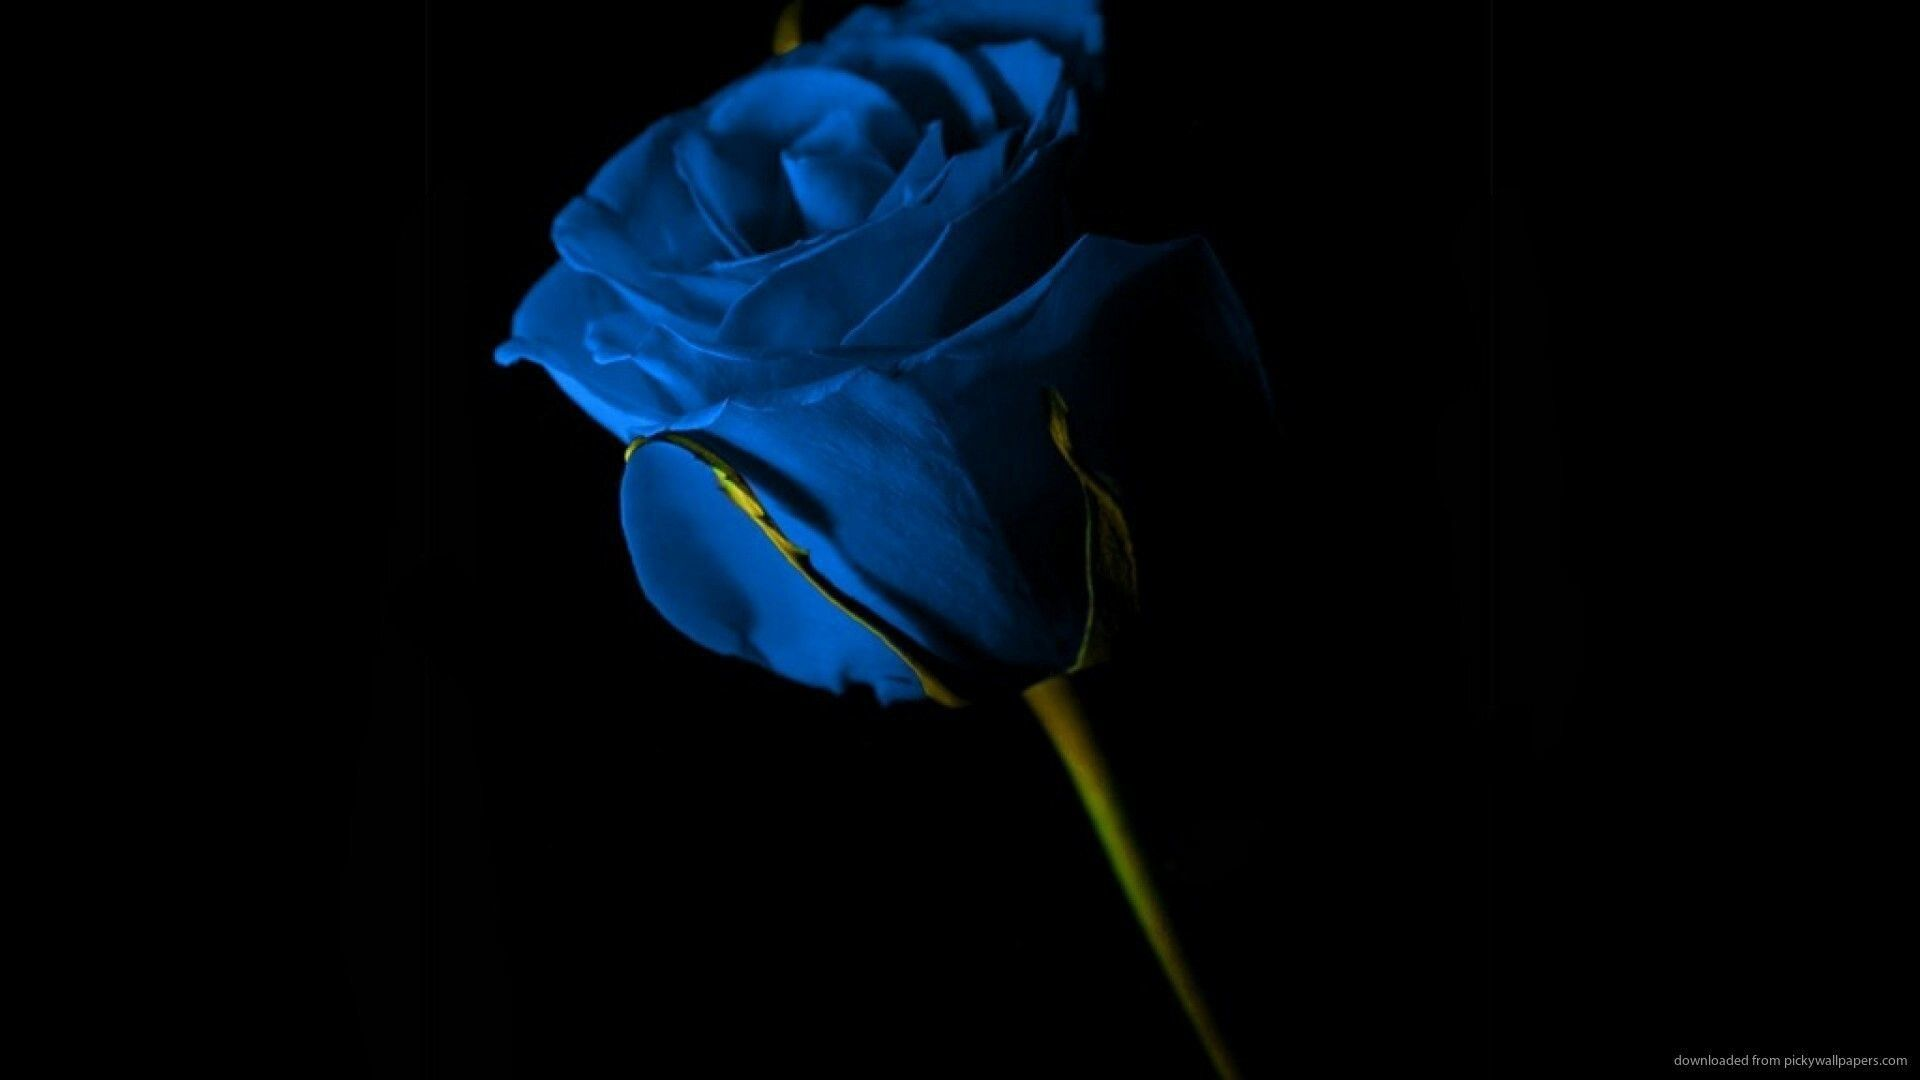 Black And Blue Rose Wallpapers Top Free Black And Blue Rose